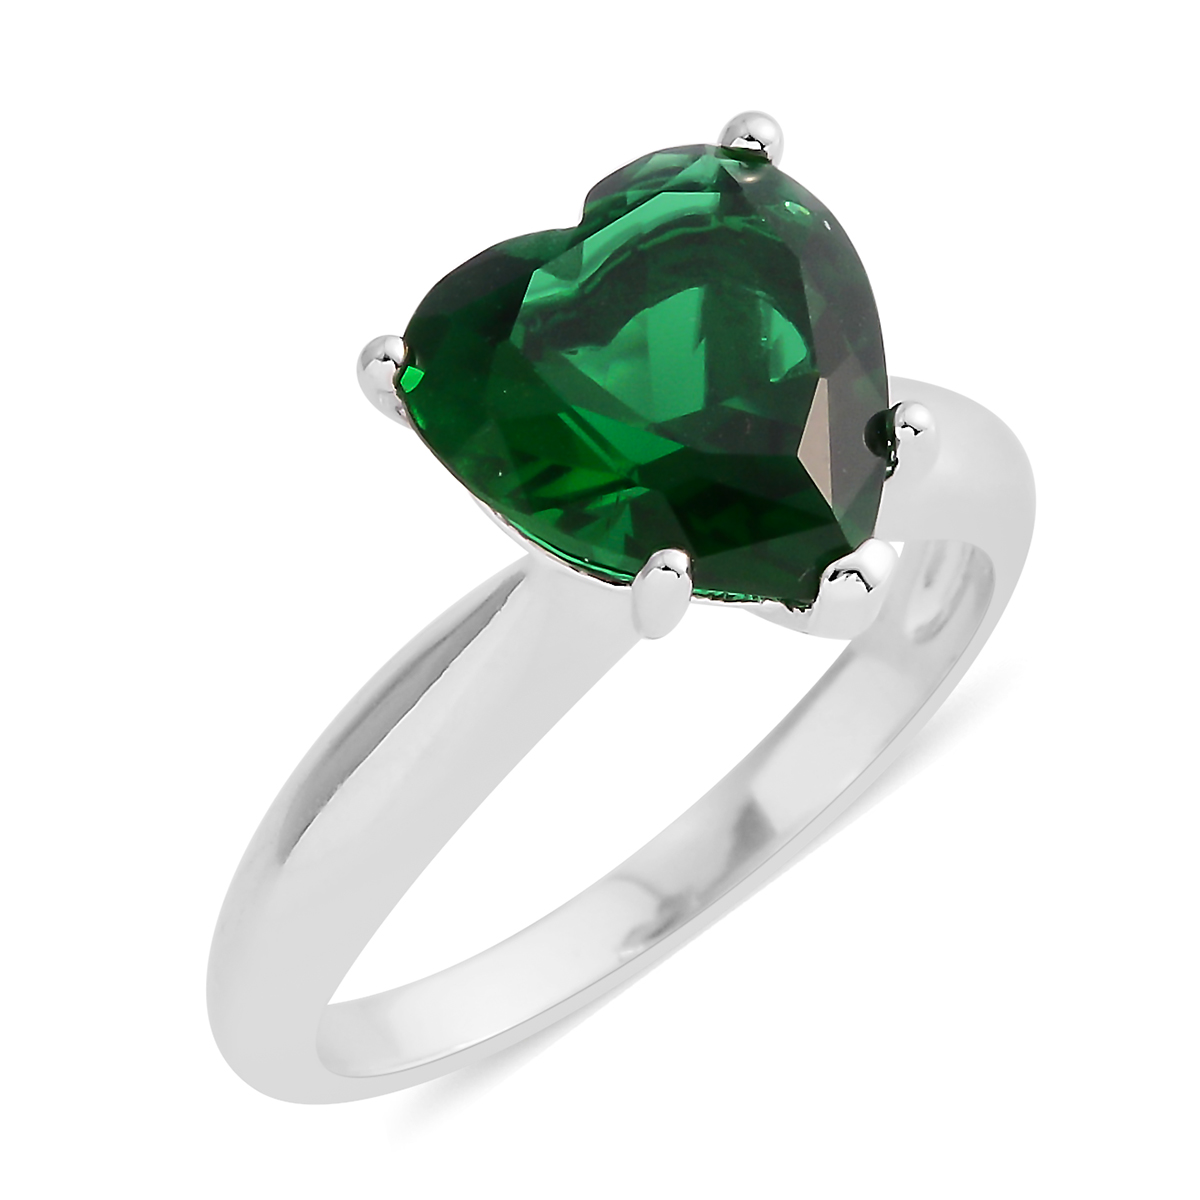 3750059ab268f Simulated Emerald Silvertone Heart Ring (Size 6.5) TGW 5.38 cts.